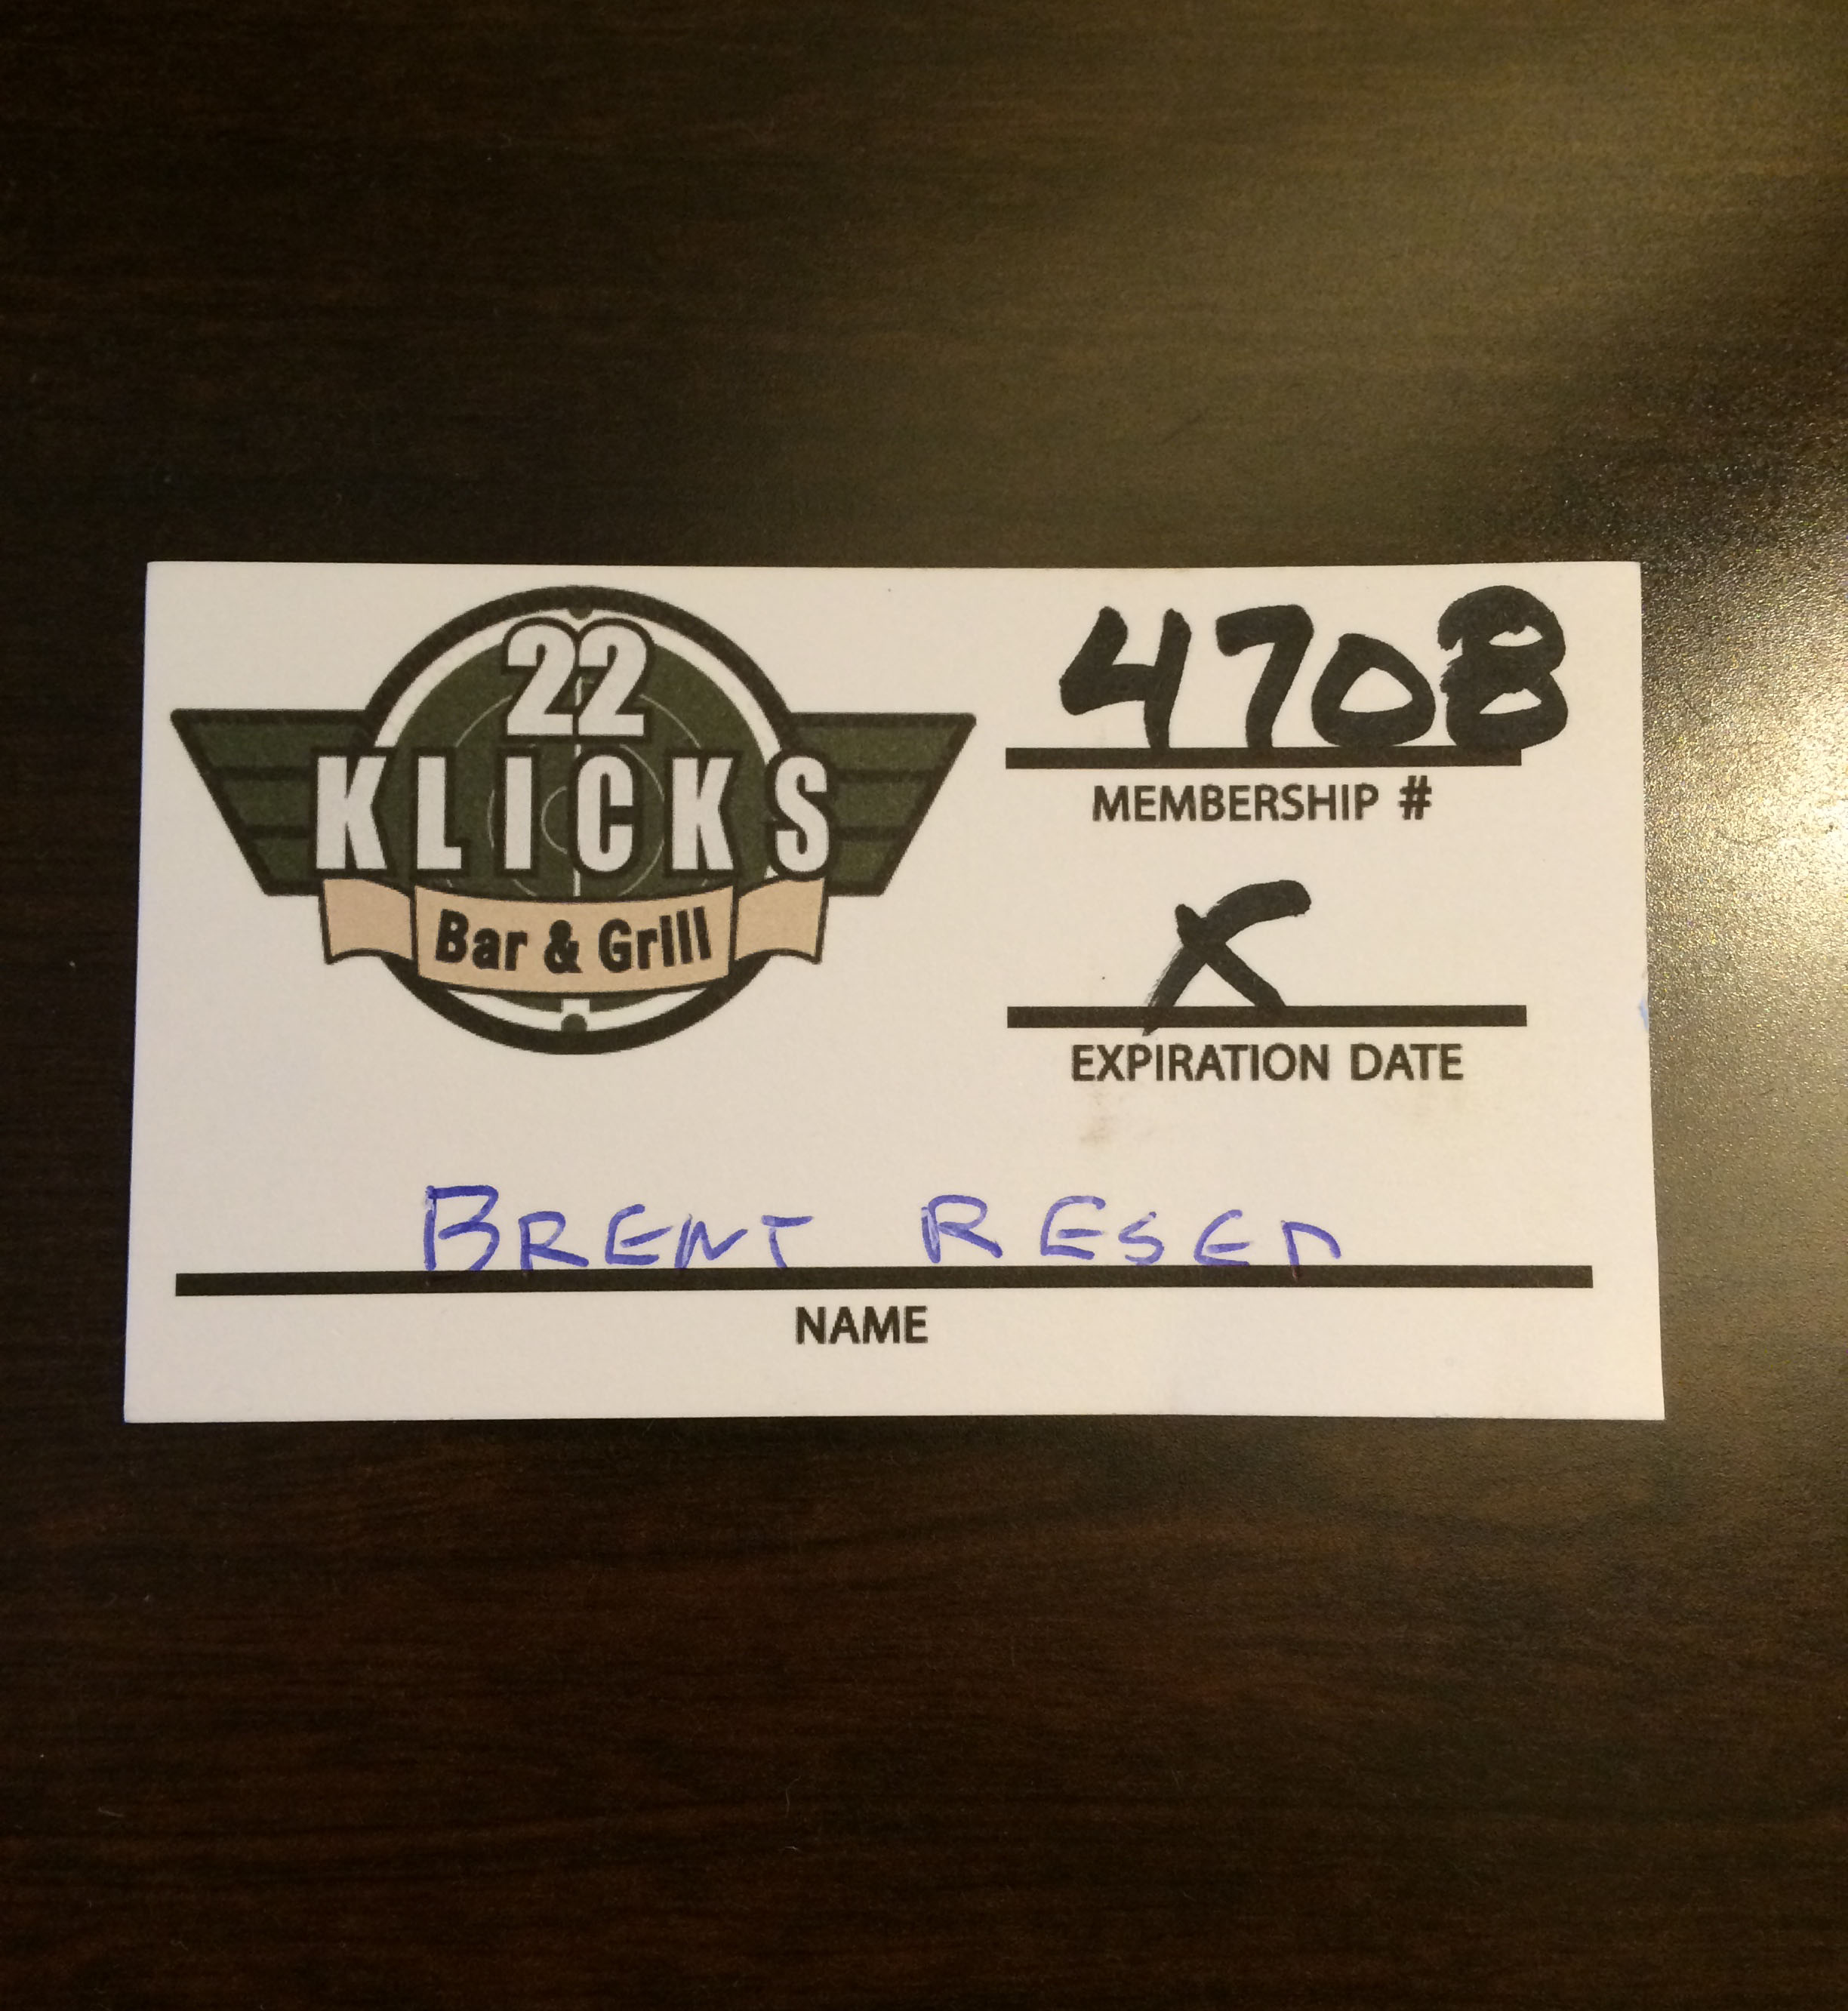 I was given a Klicks 22 card!